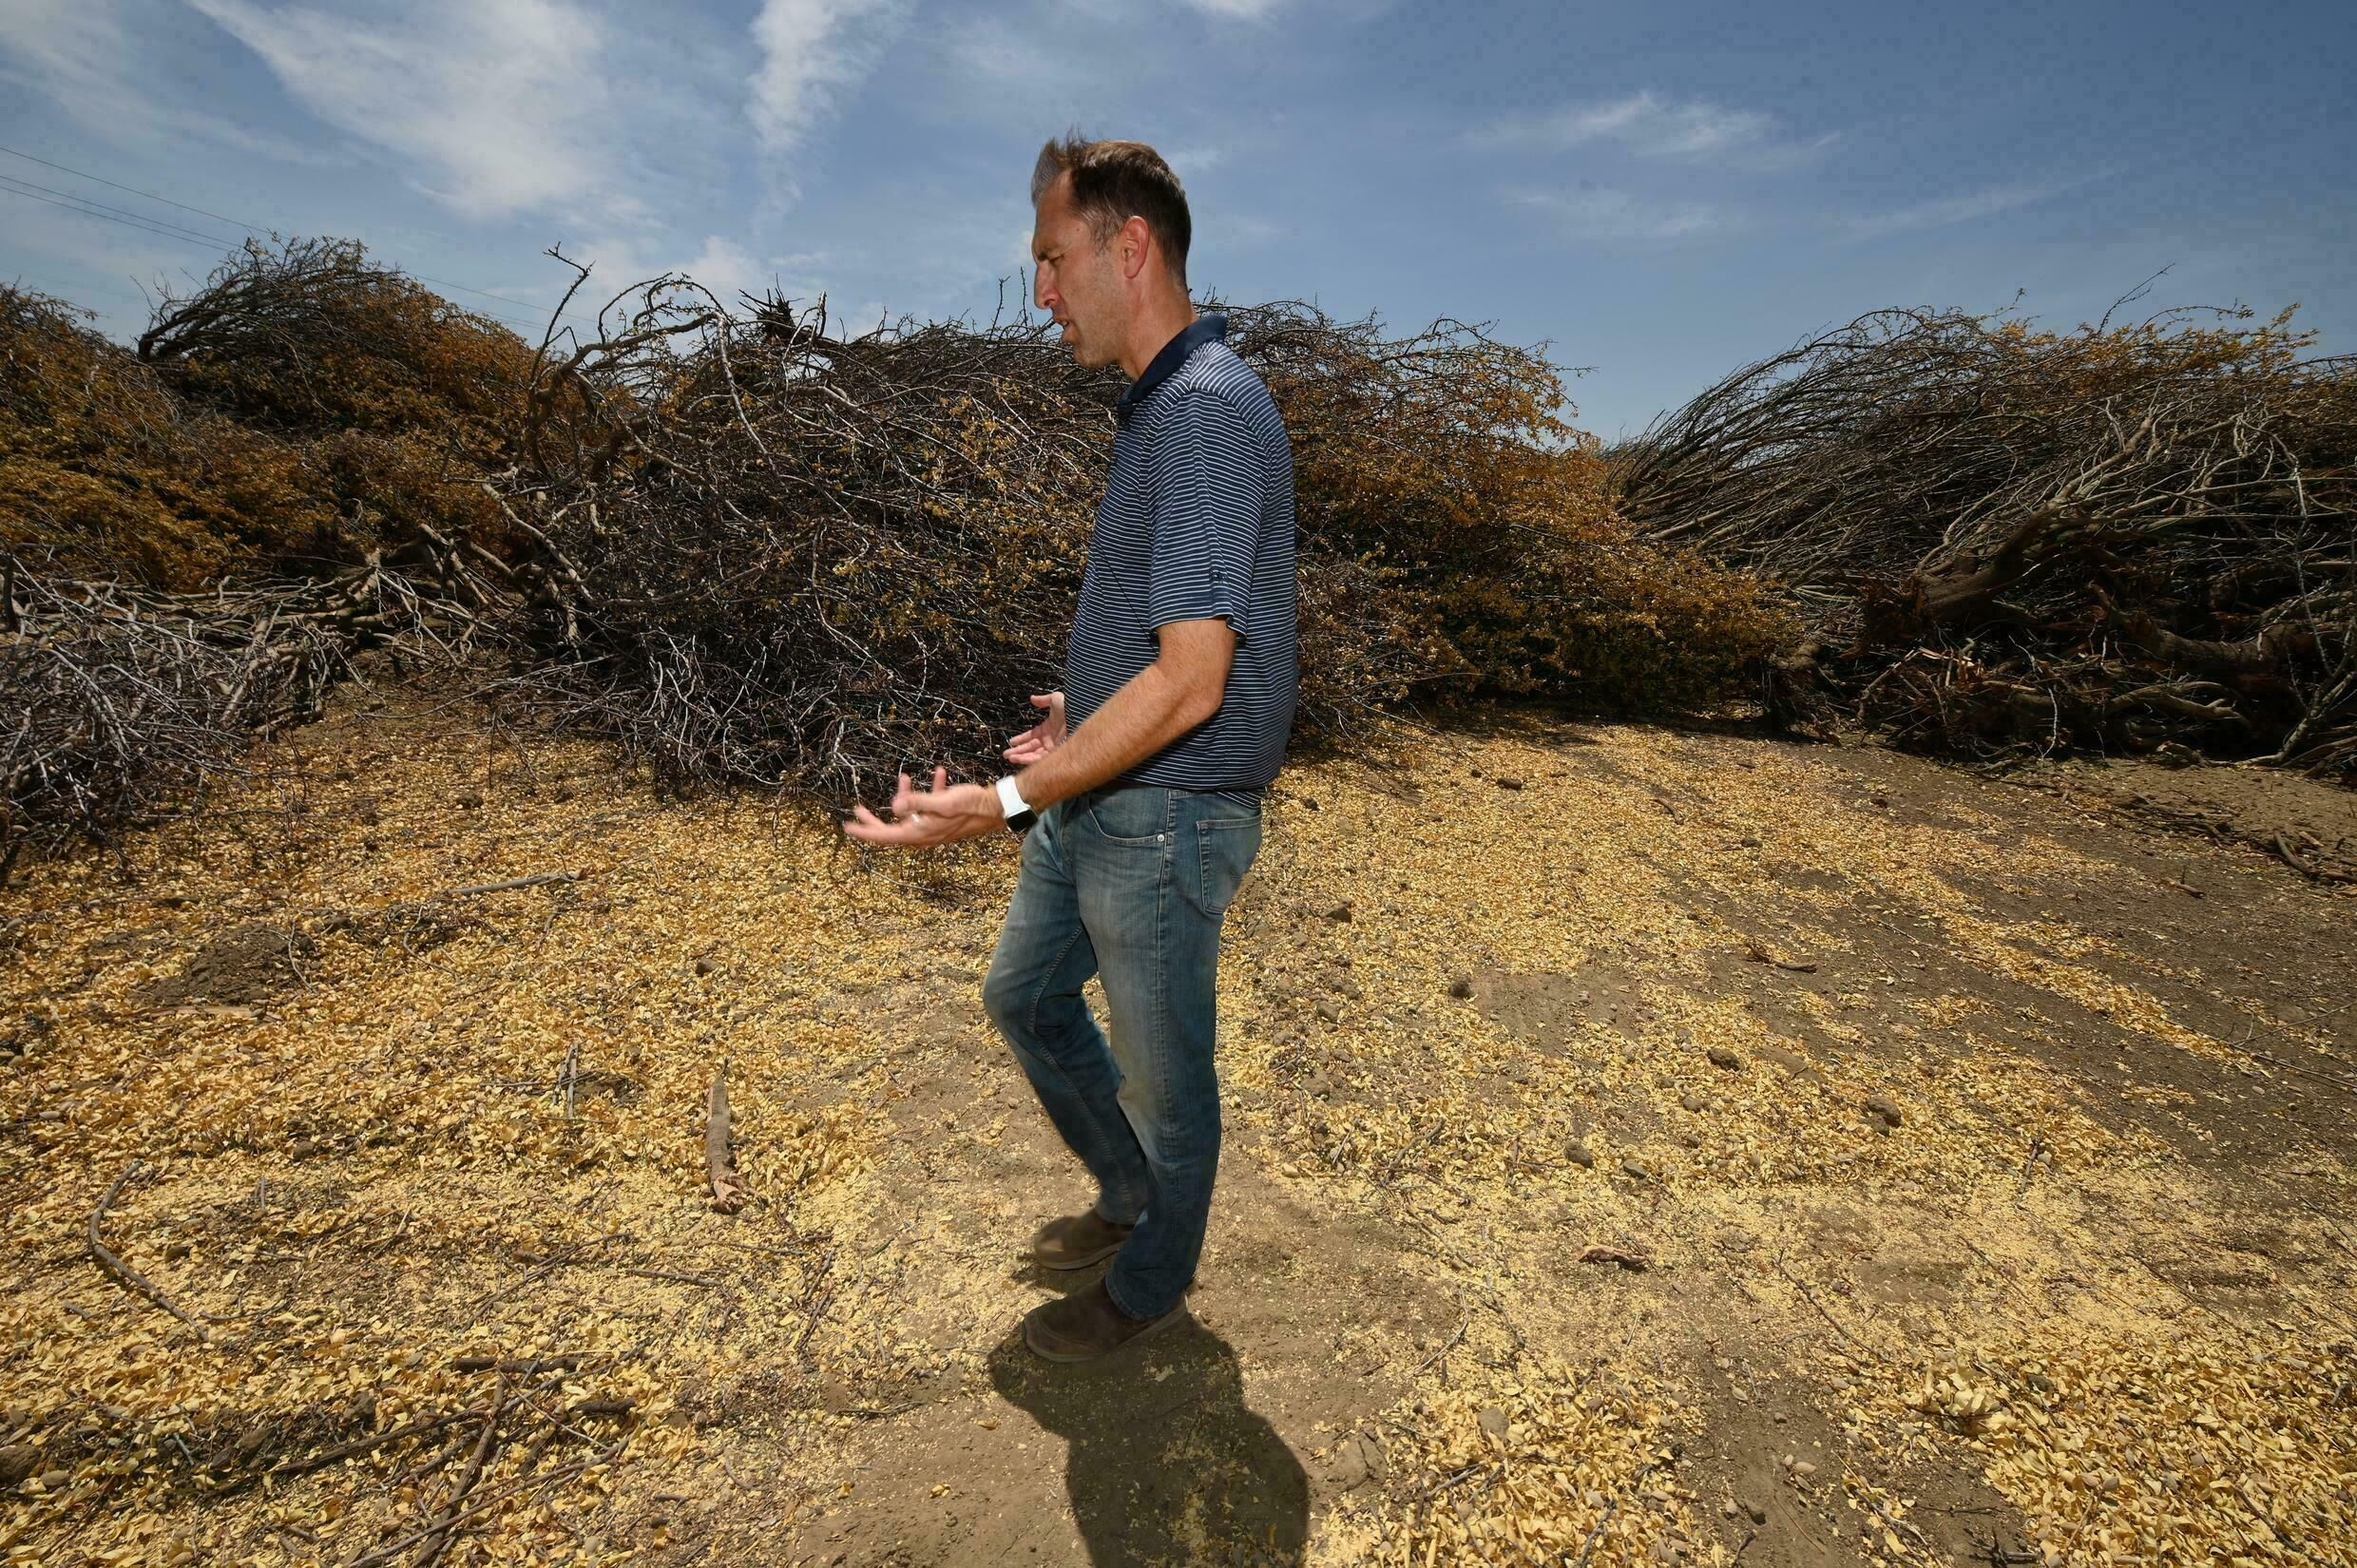 'There is not enough water on the market' to keep the almond trees alive, said Daniel Hartwig, in charge of water management for the mega-property of Woolf Farms